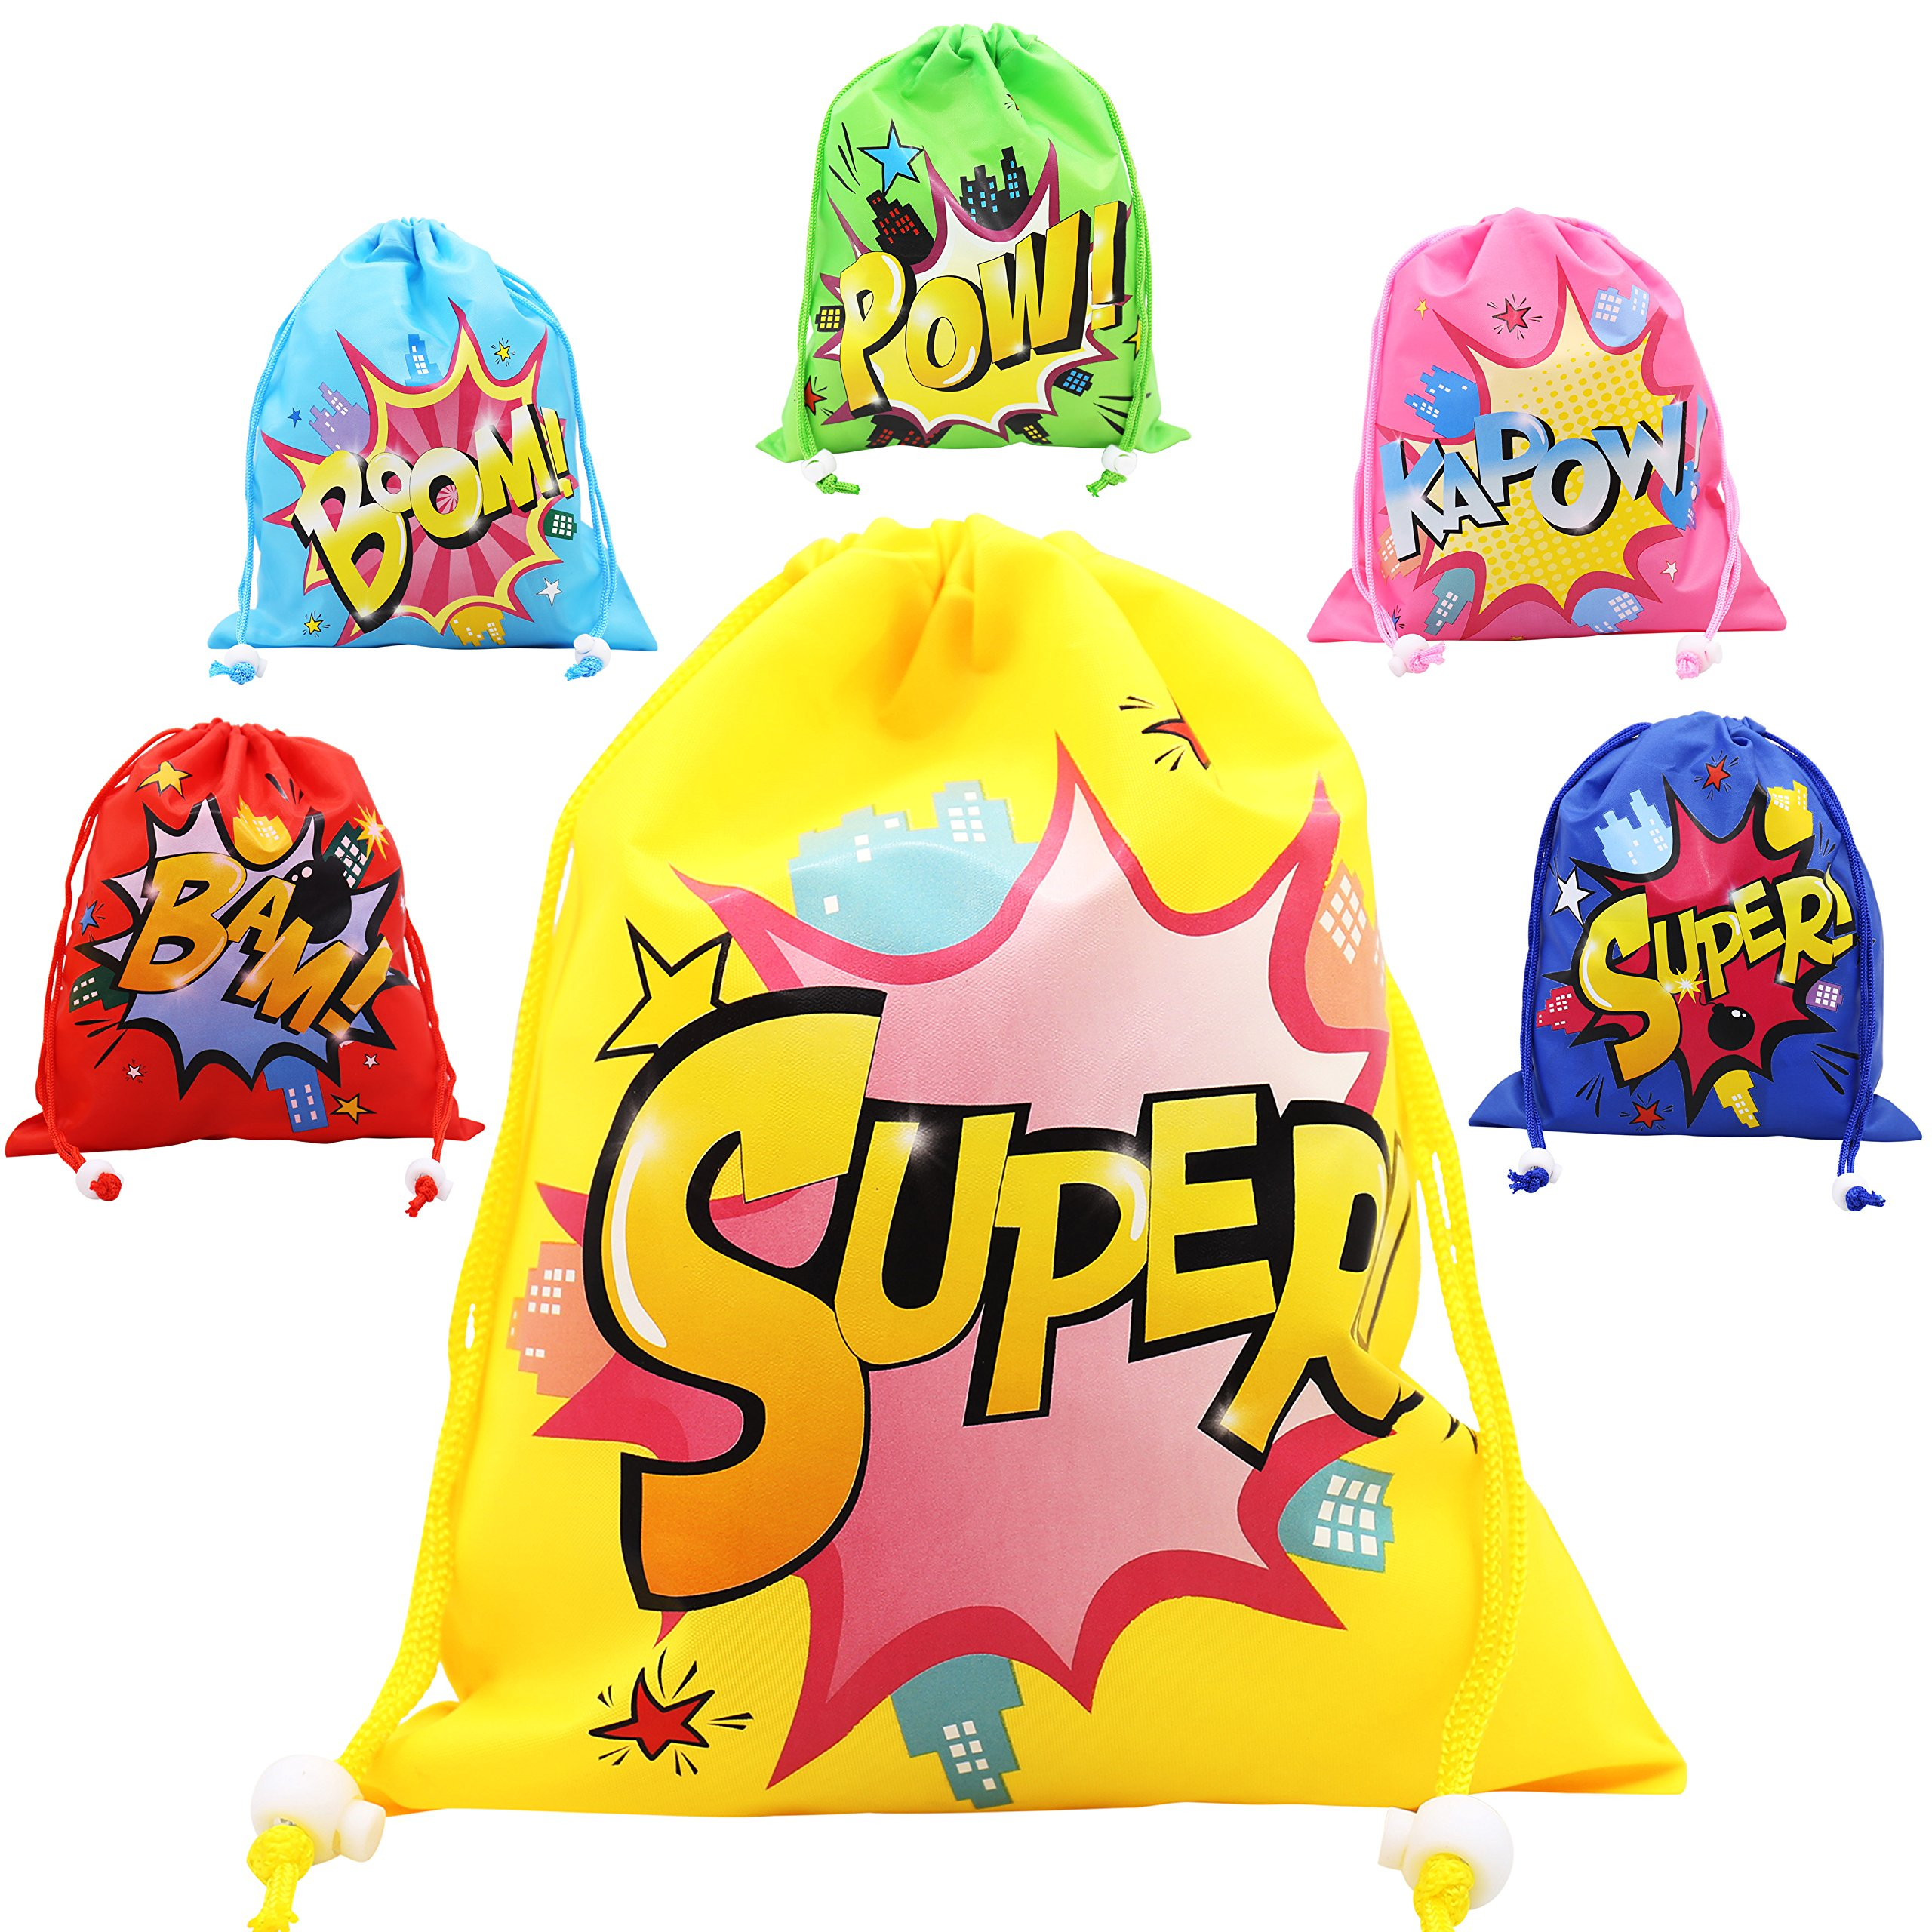 CiyvoLyeen Superhero Drawstring Bags Party Favors Bags (12 Pack), Personalised Birthday Fabric Party Goodie Bag Gift for Kids Boys & Girls